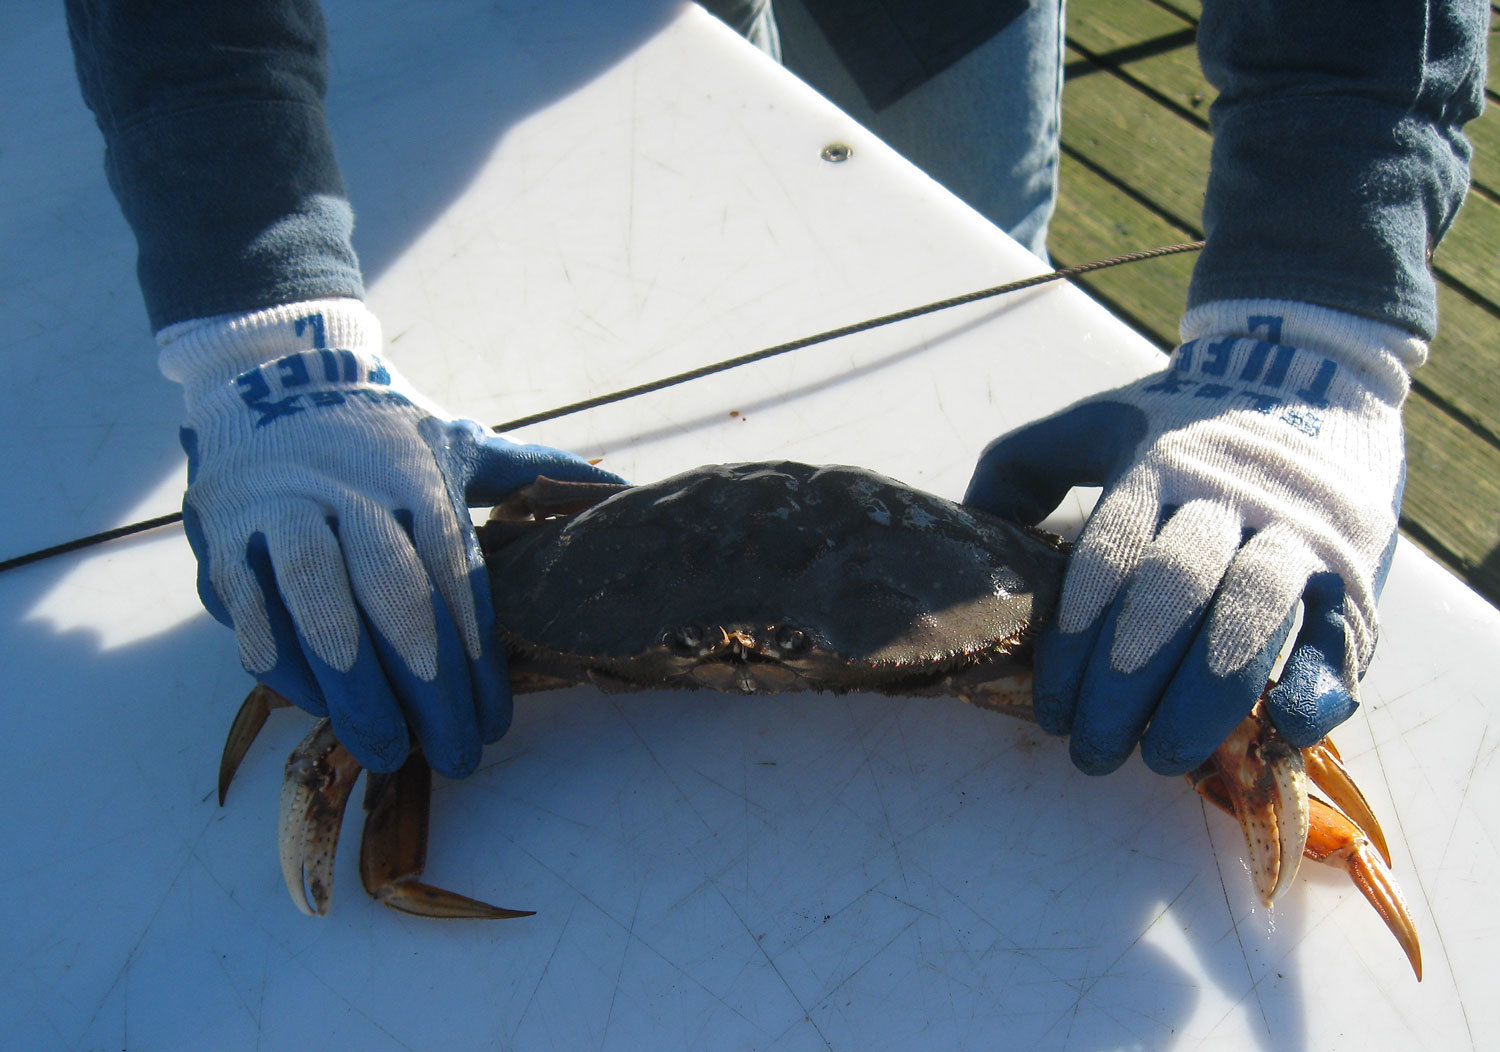 Dungeness_crab_cleaning_6232.jpg